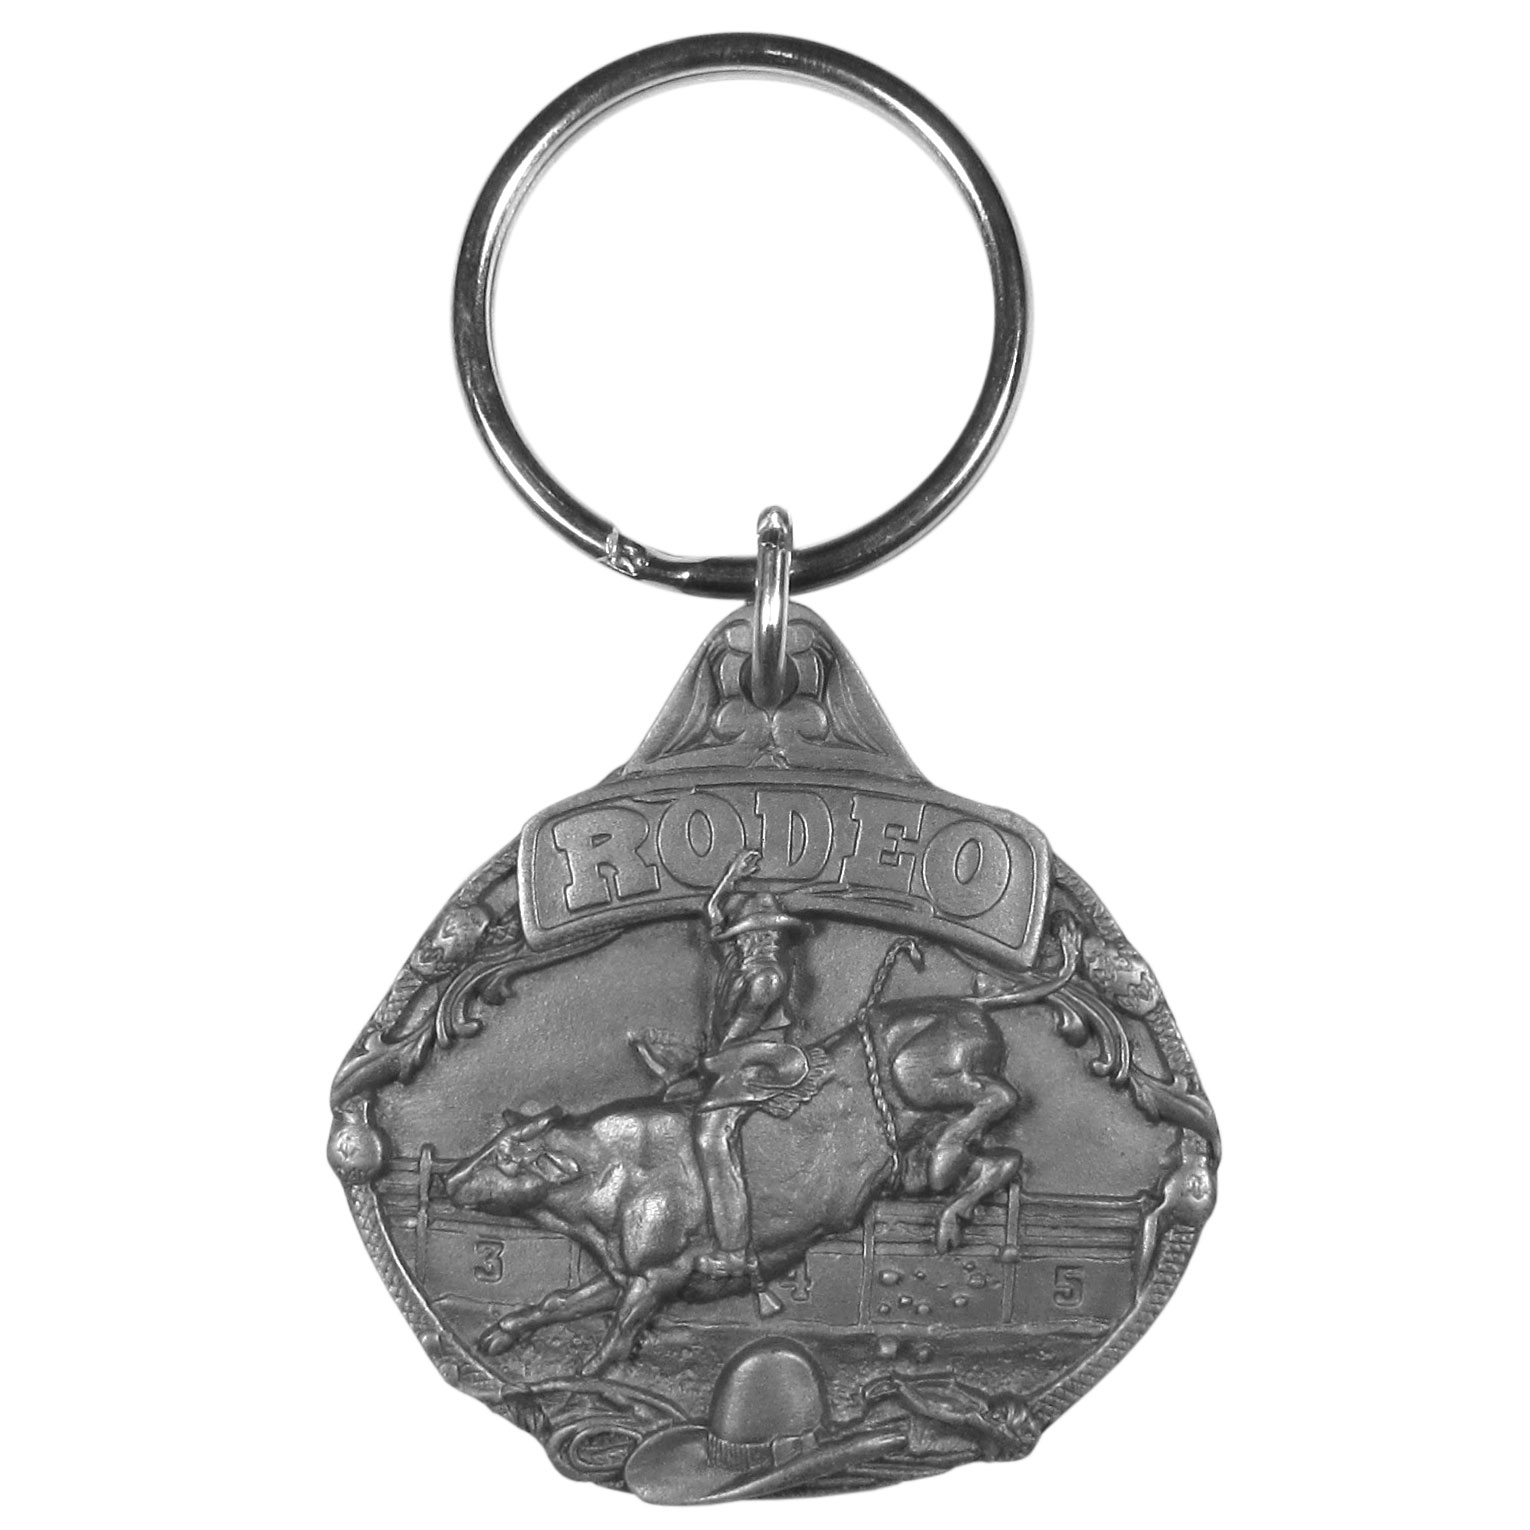 "Rodeo Bull Riding Antiqued Key Chain - Rodeo key chain has a cowboy riding a bull in the center of a rodeo arena. There is a cowboy hat and a rope in the foreground and the word ""Rodeo"" in bold at the top. On the back are the words Rodeo is a series of western events taking great skill and courage. Rodeo is very exciting and as a sport is second to none. Key chain is 1-3/4"" x 1-1/2""."